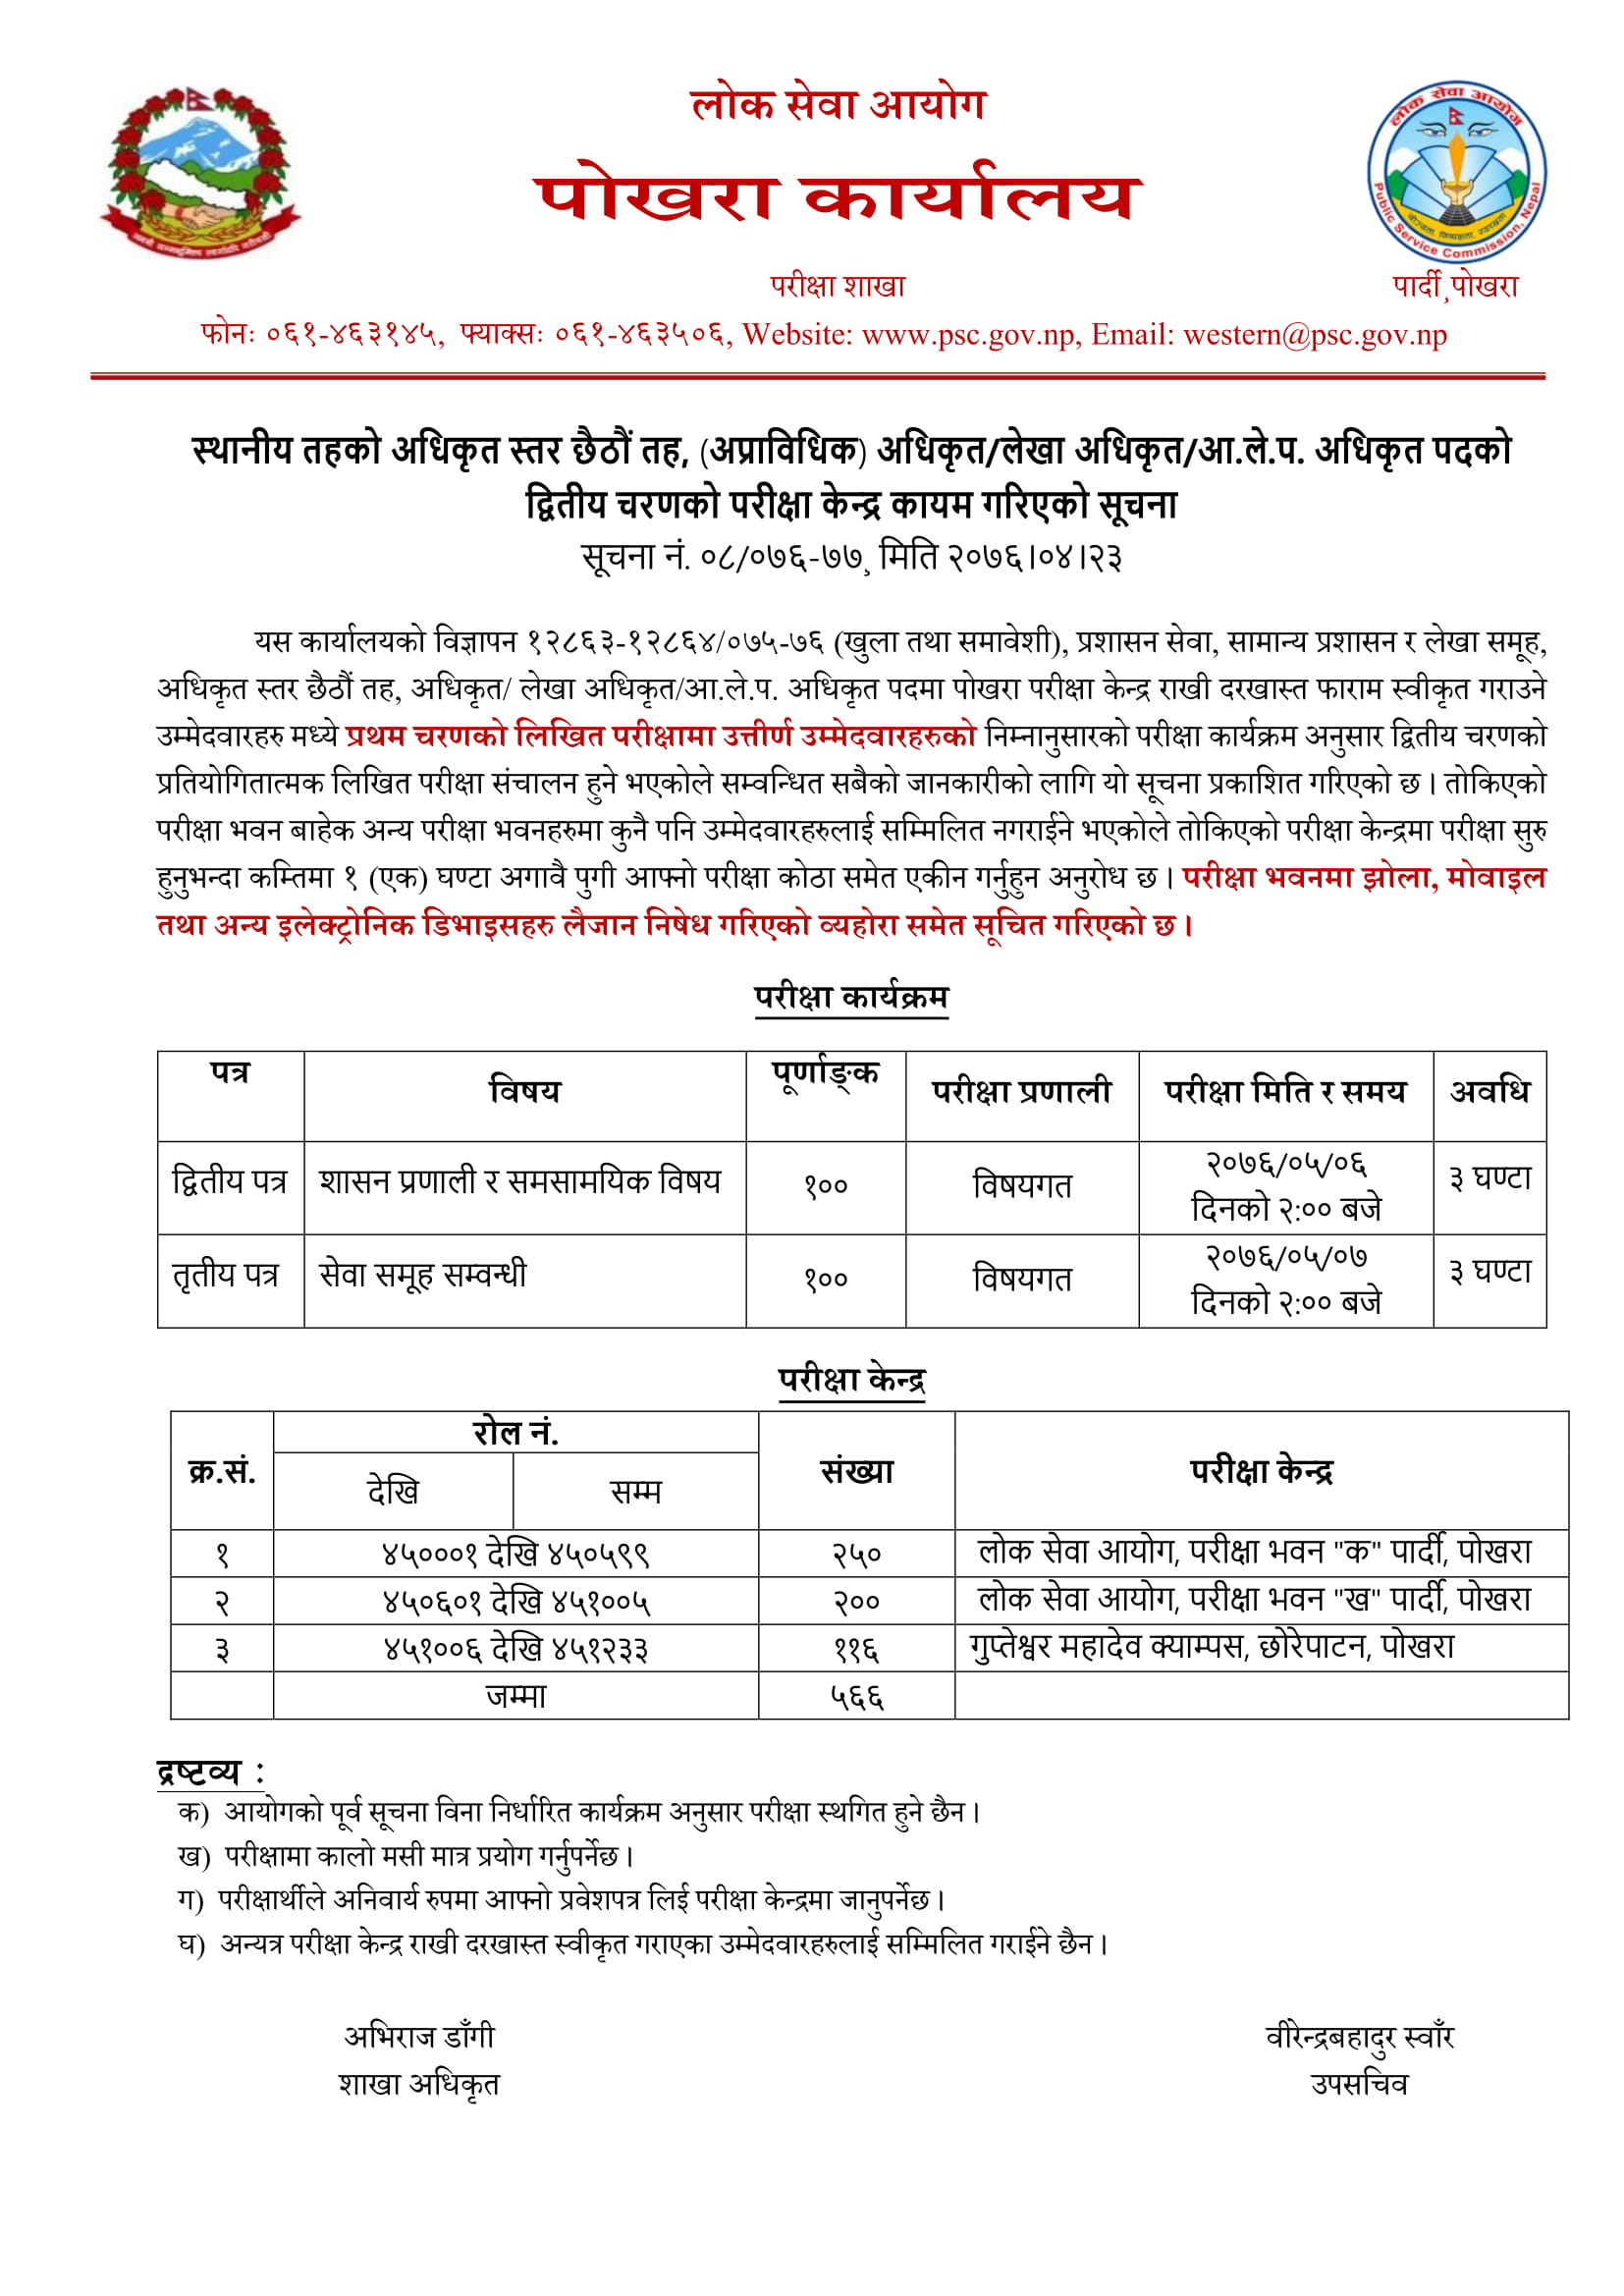 Lok Sewa Aayog Exam center 4th, PSC Exam Center 4th, Lok Sewa Exam Center 4th,Lok Sewa Aayog Exam center 4th 2076, PSC Exam Center 4th 2076, Lok Sewa Exam Center 4th 2076,Lok Sewa Aayog Exam center 5th, PSC Exam Center 5th, Lok Sewa Exam Center 5th,Lok Sewa Aayog Exam center 5th 2076, PSC Exam Center 5th 2076,Lok Sewa Exam Center 5th 2076,Lok Sewa Aayog Exam center 6th, PSC Exam Center 6th, Lok Sewa Exam Center 6th,Lok Sewa Aayog Exam center 6th 2076, PSC Exam Center 6th 2076,Lok Sewa Exam Center 6th 2076,Lok Sewa Aayog Exam center Prasa, PSC Exam Center Prasa, Lok Sewa Exam Center Prasa,Lok Sewa Aayog Exam center Prasa 2076, PSC Exam Center Prasa 2076,Lok Sewa Exam Center Prasa 2076,Lok Sewa Aayog Exam center , PSC Exam Center , Lok Sewa Exam Center , Lok Sewa Aayog Officer Exam Center 2076,,Lok Sewa Aayog Officer Exam Center,Lok Sewa Officer Exam Center,Lok Sewa Officer Exam Center 2076,Officer Exam Center 2076,Officer Exam Center, Lok Sewa Aayog 6th level Exam Center 2076,Lok Sewa Aayog 6th level Exam Center,Lok Sewa 6th level Exam Center,Lok Sewa 6th level Exam Center 2076,6th level Exam Center 2076,6th level Exam Center, lok sewa aayog exam date,kharidar exam center,lok sewa aayog exam center 2075,lok sewa aayog jaleshwor,exam center of psc 2076,www psc gov np exam center 2076,officer exam centre,lok sewa aayog exam date 2076,Lok Sewa Aayog Adhikrit Exam Center 2076,Lok Sewa Aayog Adhikrit Exam Center,Lok Sewa Adhikrit Exam Center,Lok Sewa Adhikrit Exam Center 2076,Adhikrit Exam Center 2076,Adhikrit Exam Center, Lok Sewa Aayog Adhikrit Exam Center Dhankuta 2076Sthanaya Taha Lok Sewa Aayog Exam centers for Dhankuta Zone. There is first terminal entrance exam center candidates. So that there is exam centers according to the examination roll number only.There is different Dhankuta Zone in the front of the exam roll number so it will not be much Dhankuta Zone to Entrance Exam center in the spot for the candidates. Still if you have any confusion you can contact us.